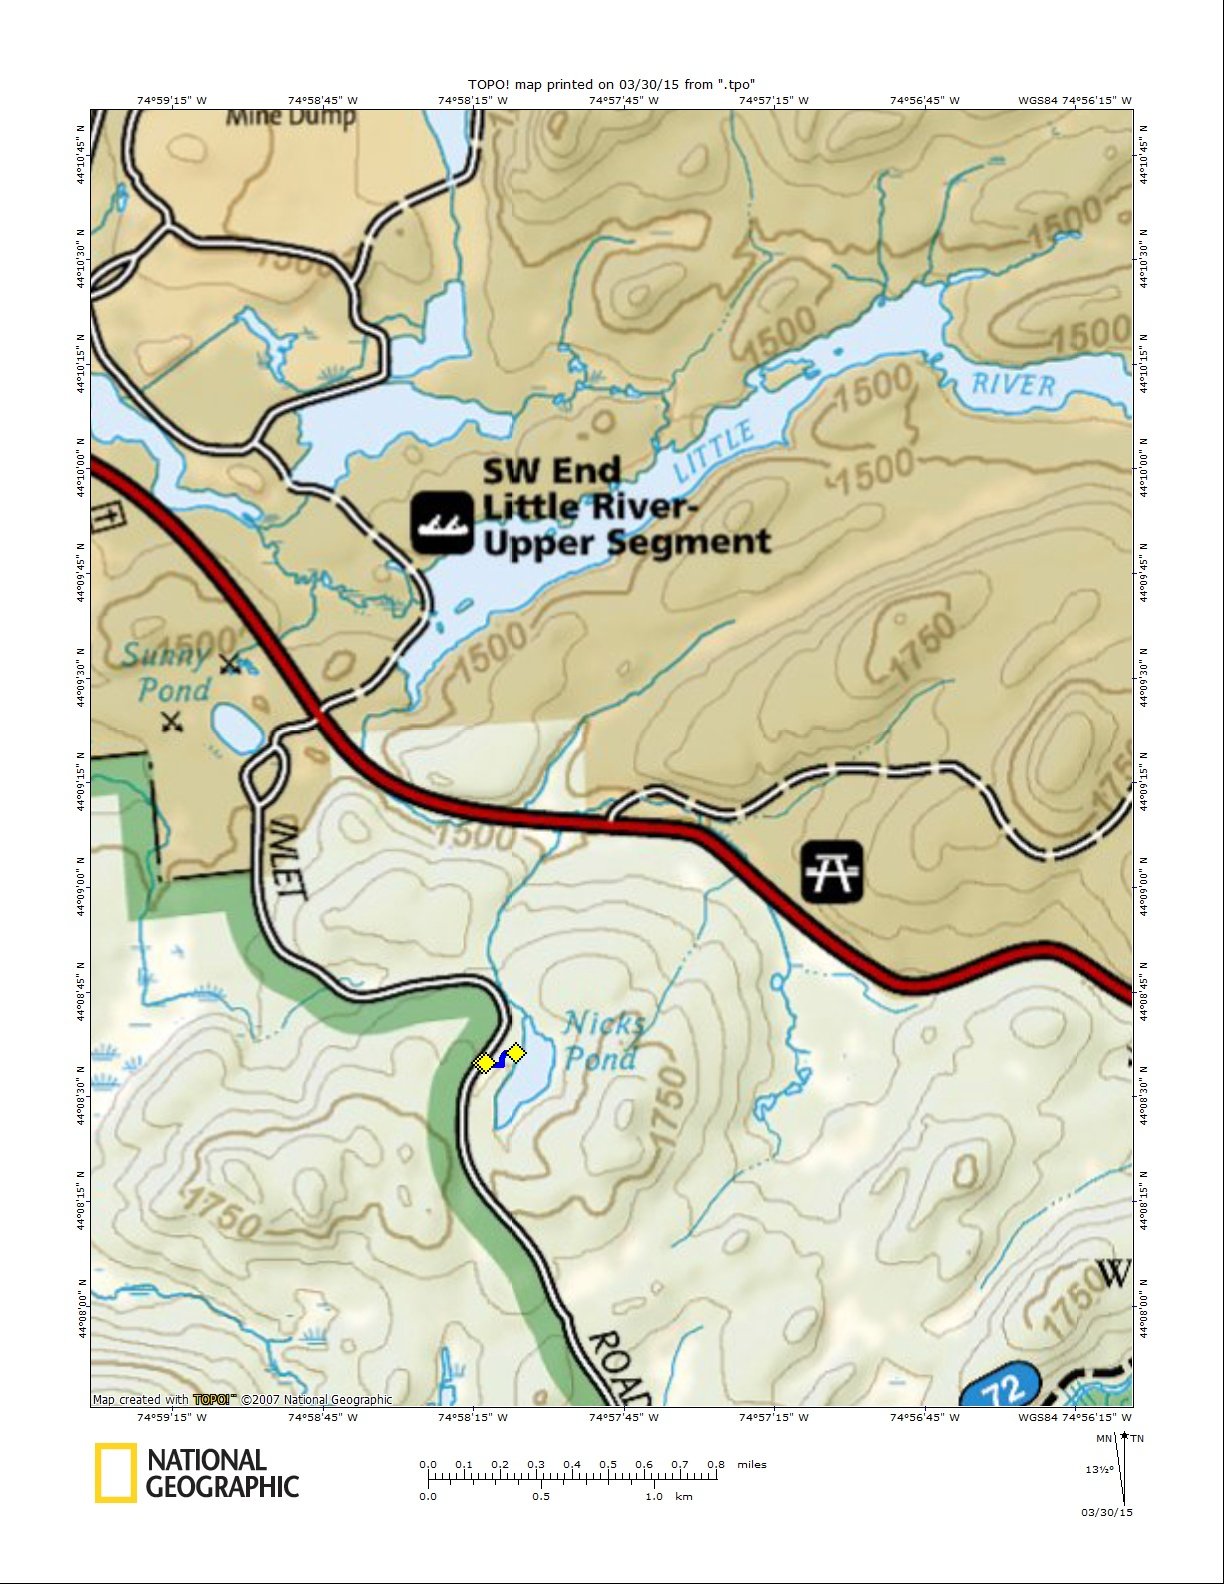 Nick's Pond Map